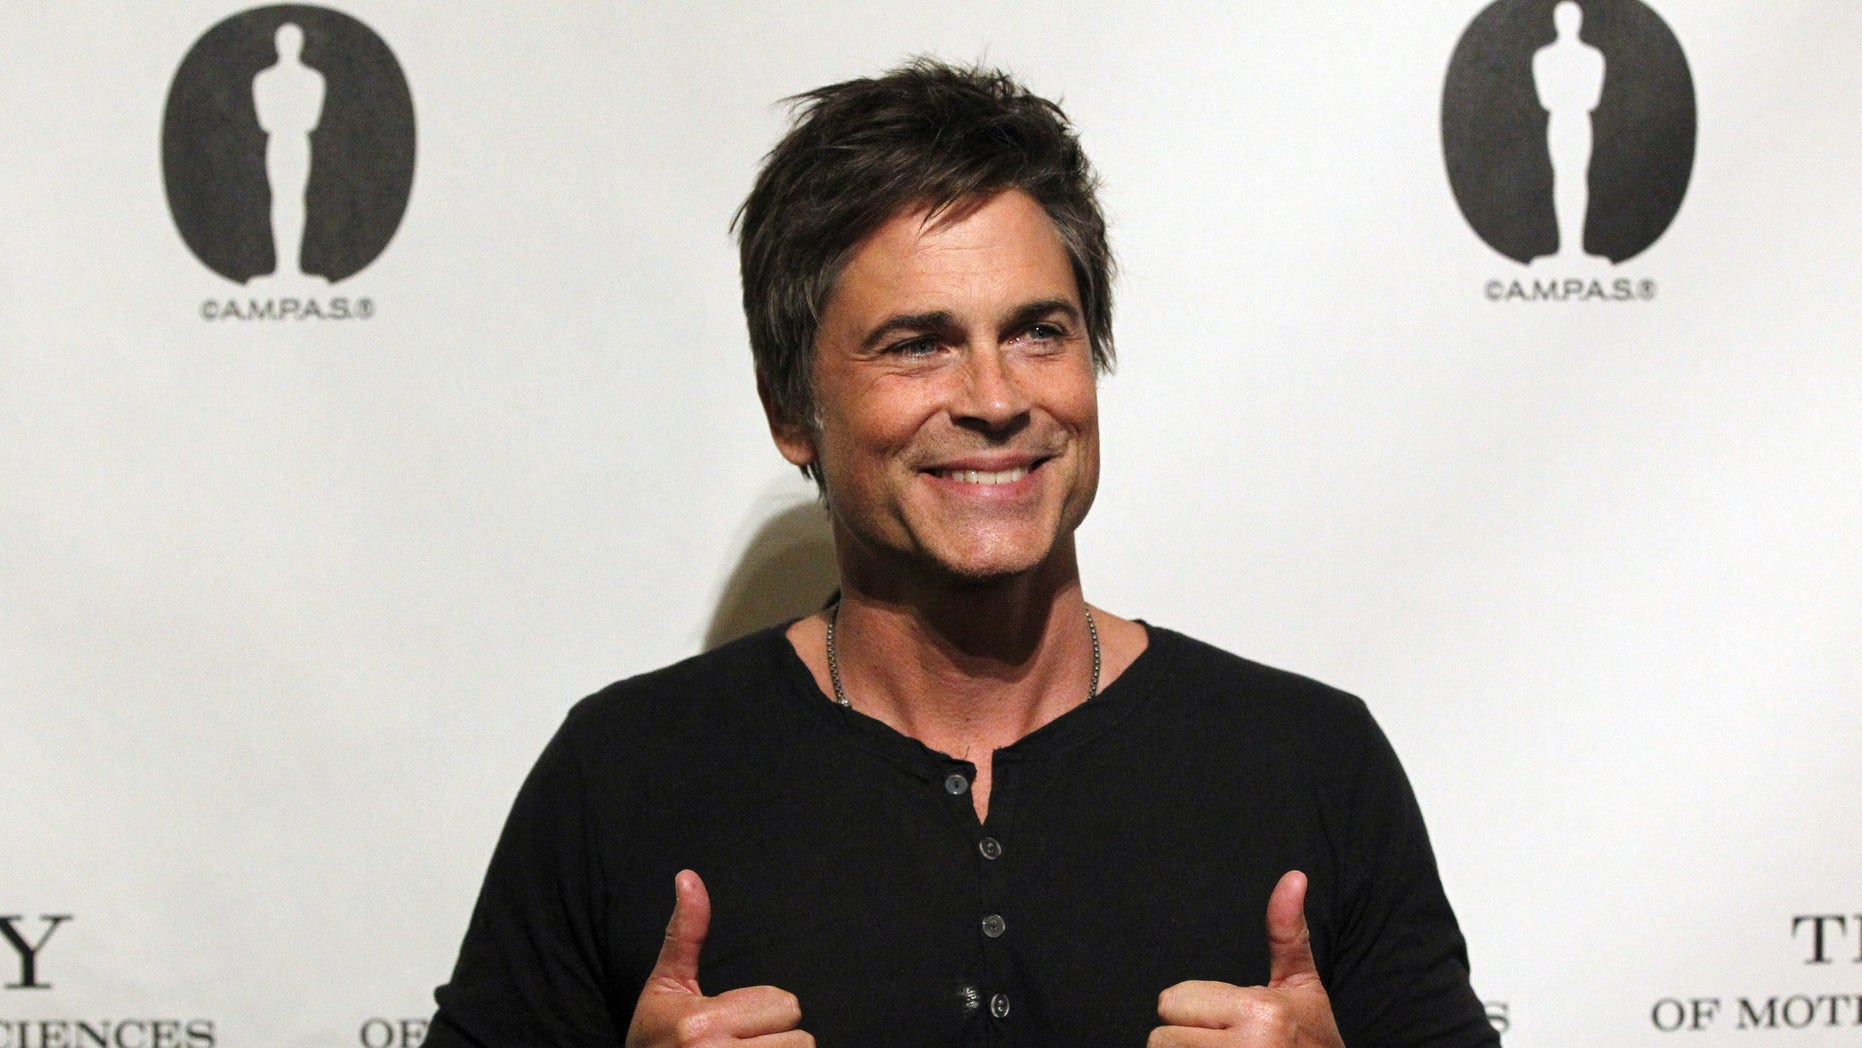 "Cast member Rob Lowe poses before a screening and panel discussion for the reunion of the cast of the 1992 movie ""Wayne's World"" at the Academy of Motion Picture Arts and Sciences in Beverly Hills, California April 23, 2013. REUTERS/Mario Anzuoni (UNITED STATES - Tags: ENTERTAINMENT) - RTXYXOG"